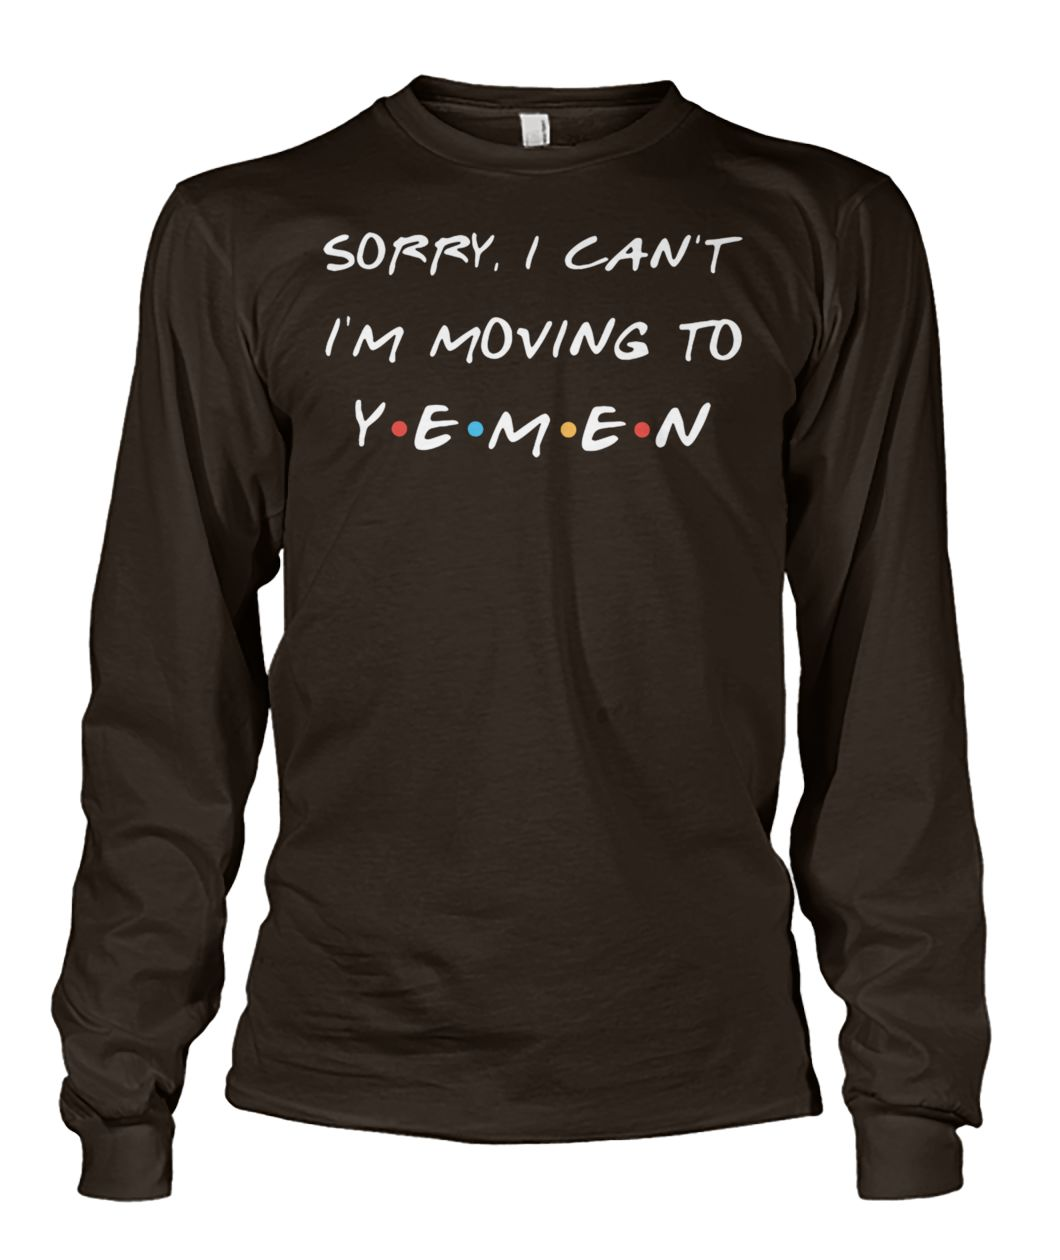 Friends tv show sorry I can't I'm moving to yemen unisex long sleeve